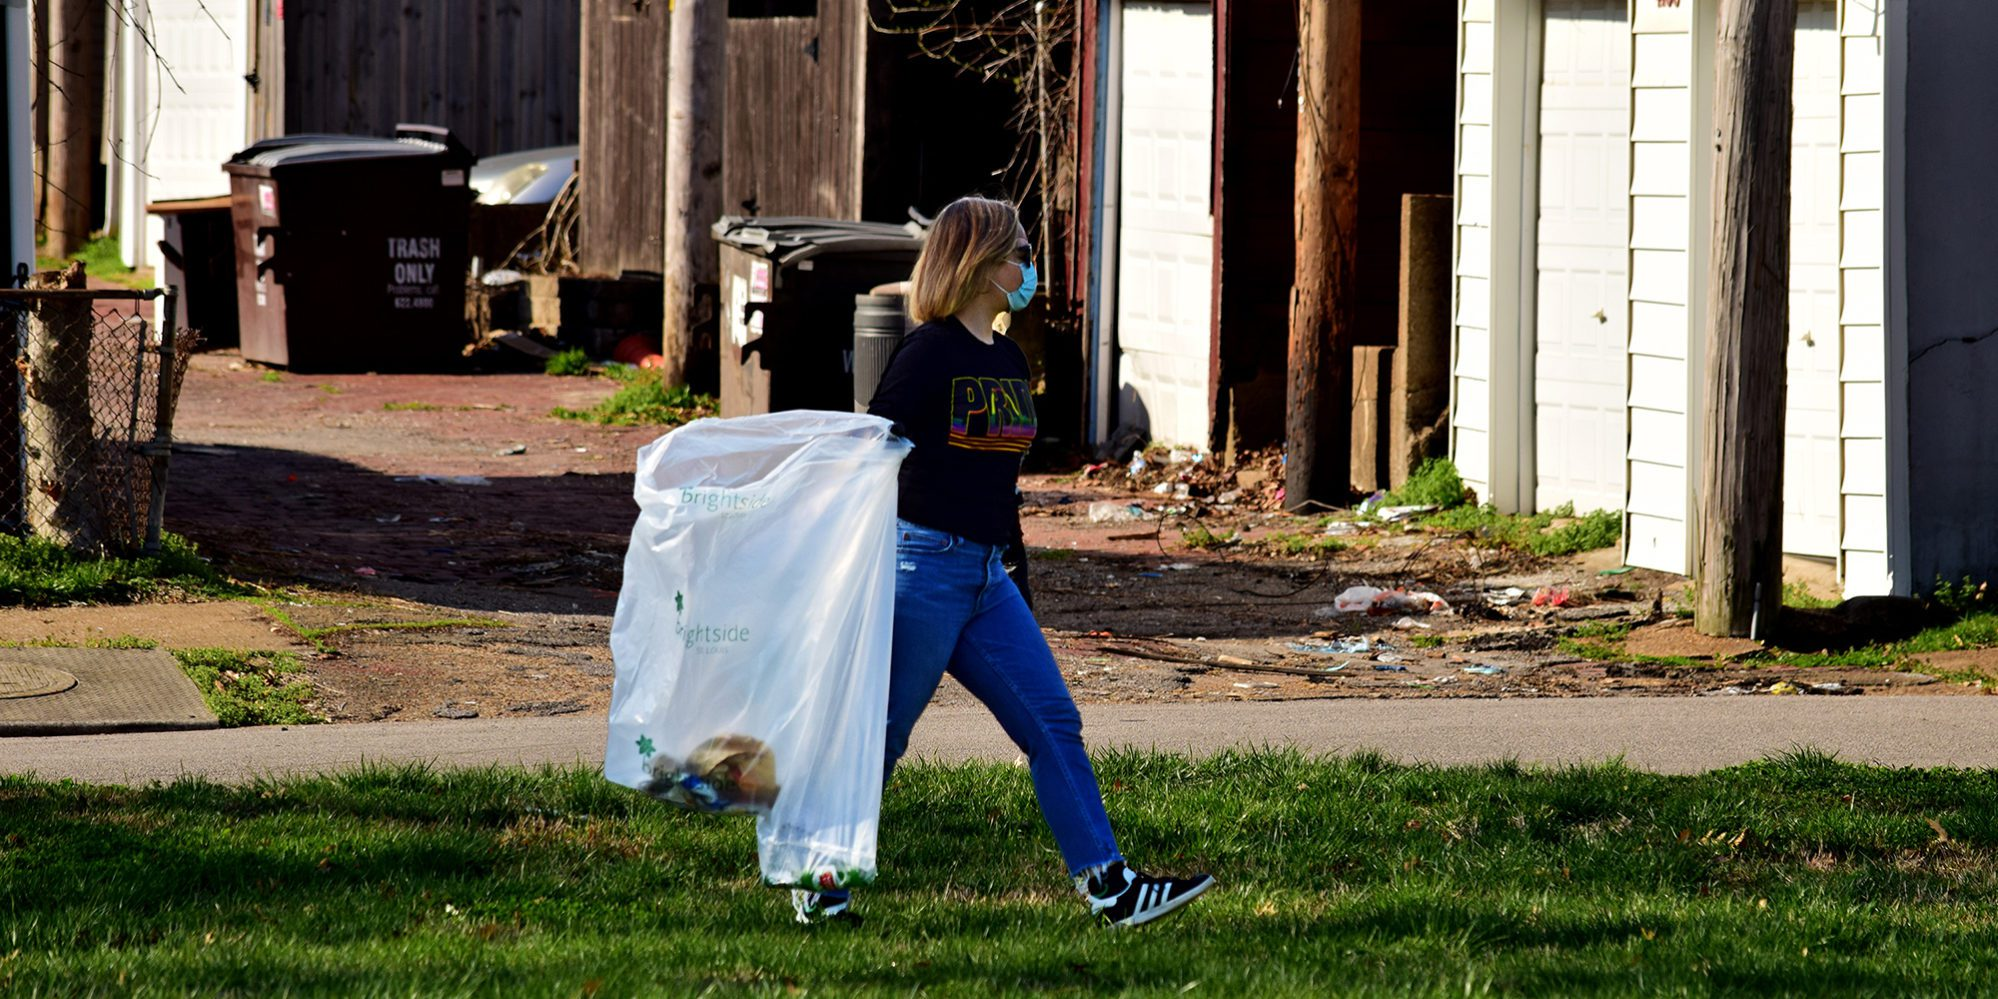 A neighbor cleans up Marquette Park in Dutchtown, St. Louis, MO.